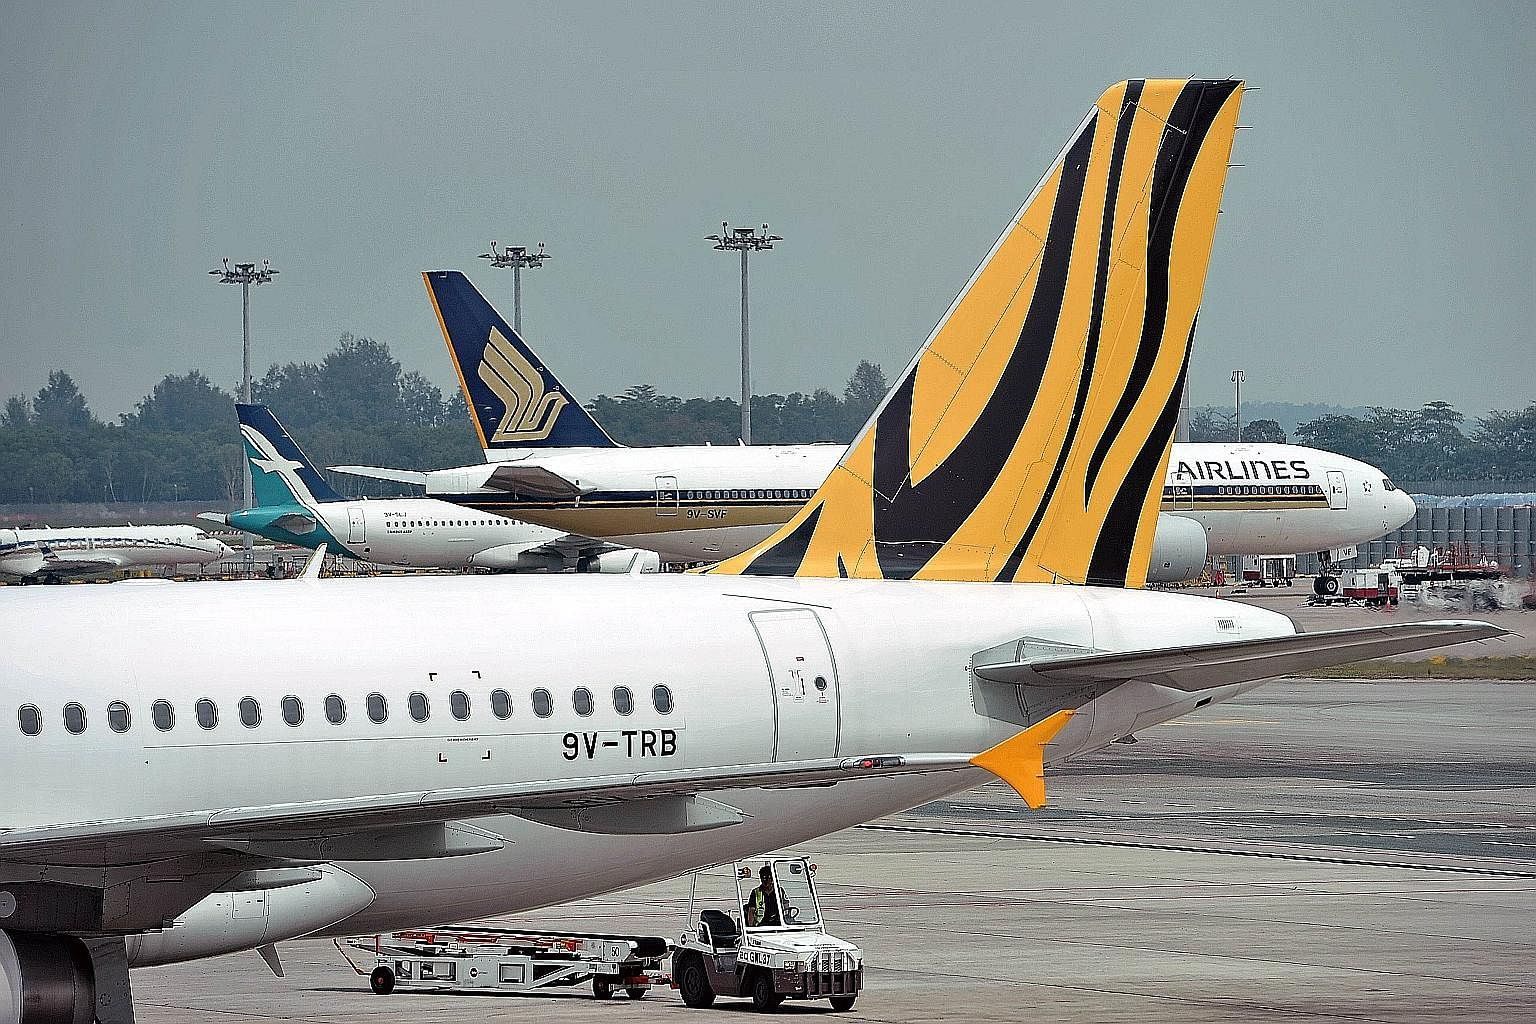 Brand differentiation could become more challenging for SIA with its takeover offer for Tigerair.